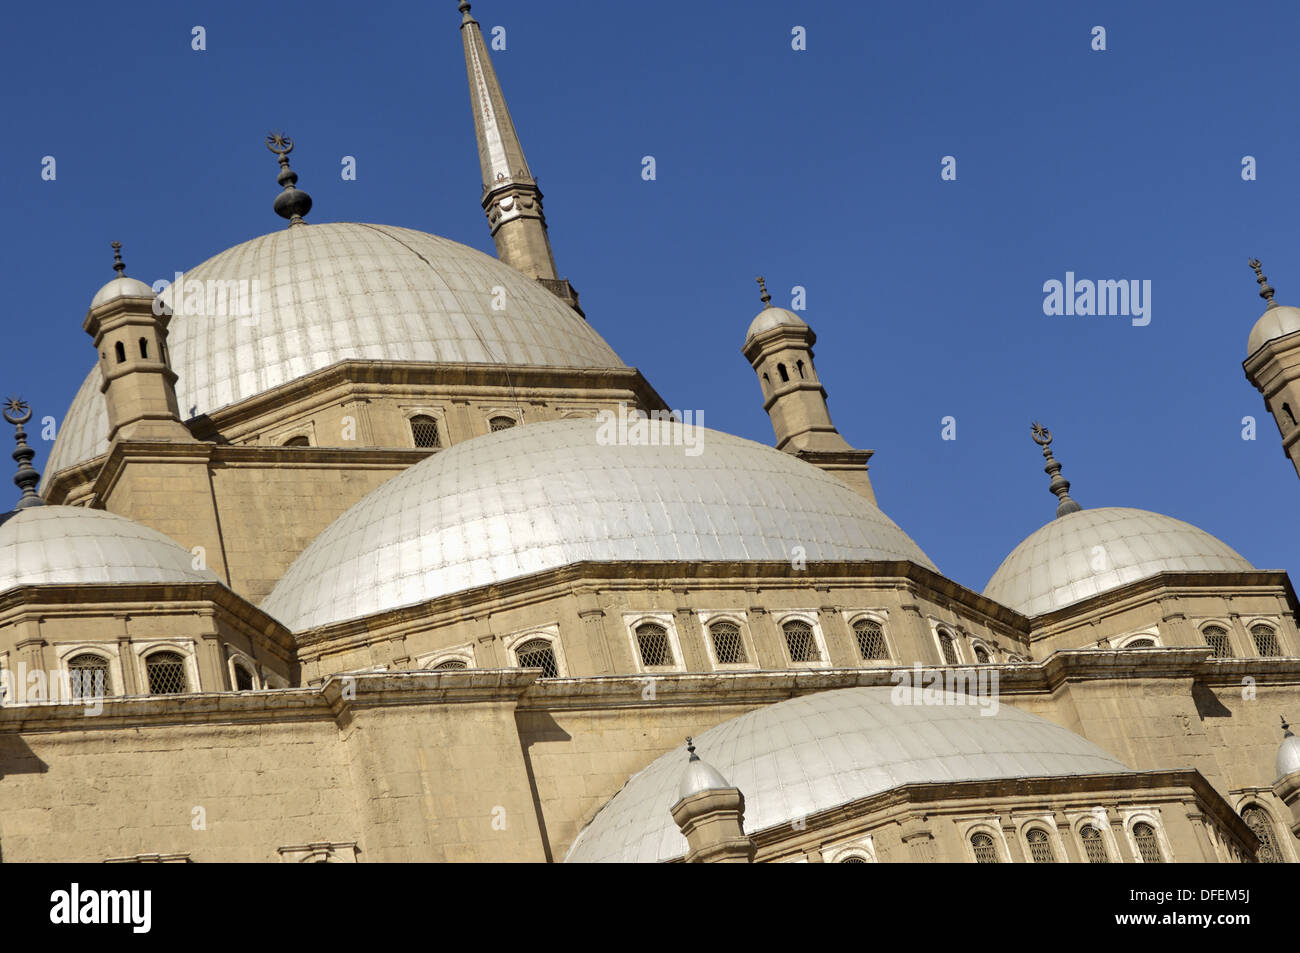 The Mosque of Muhammad Ali at the Citadel built during the first half of the 19th century. Cairo city. Egypt. Stock Photo